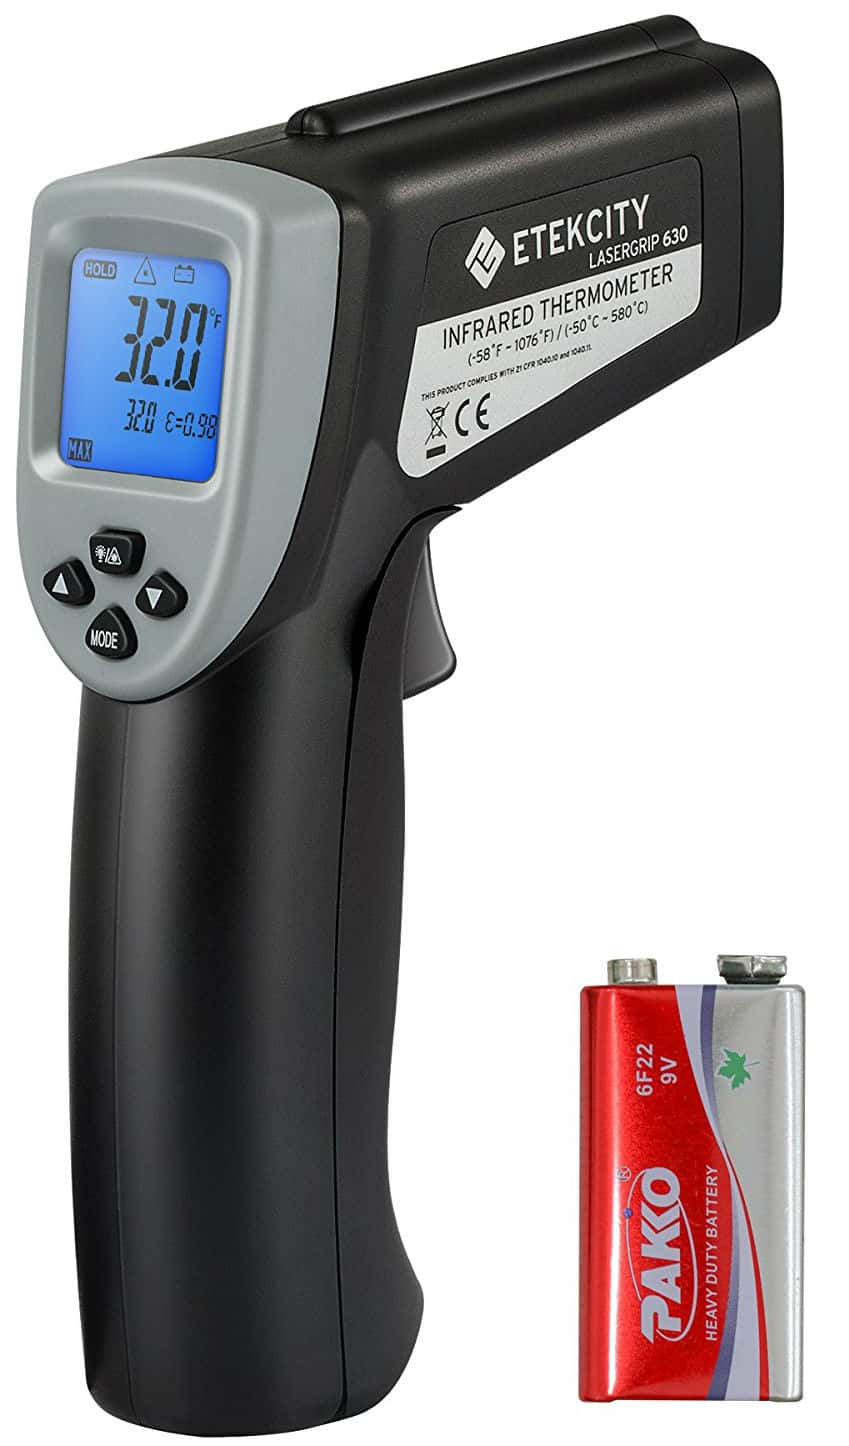 Etekcity Lasergrip 630 Dual Laser Digital Infrared Thermometer Non-contact Temperature Gun